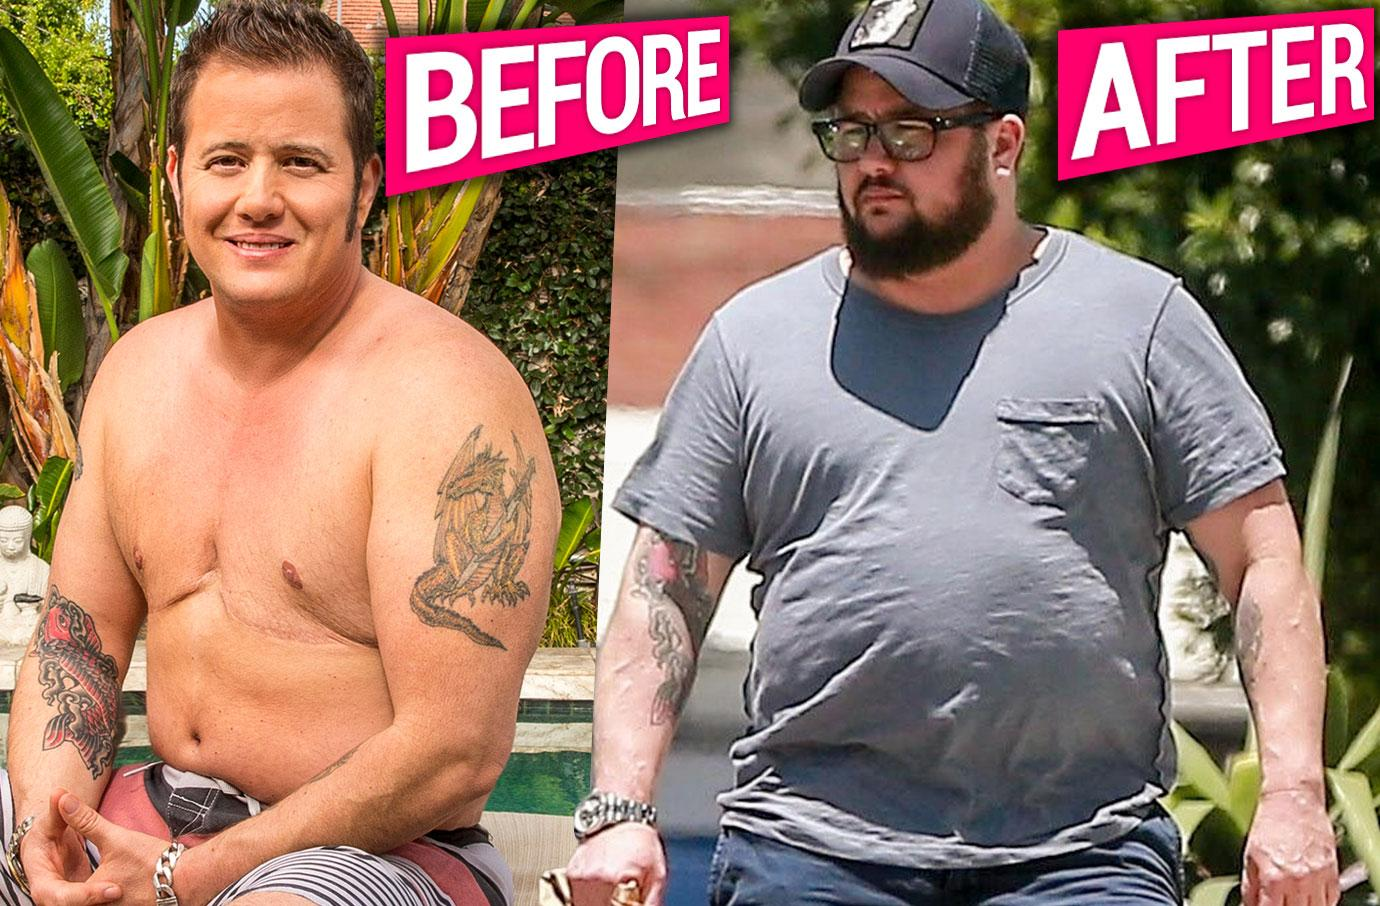 Chaz Bono – Cher's Kid's Extreme Weight Loss And Gains Are Killing Him